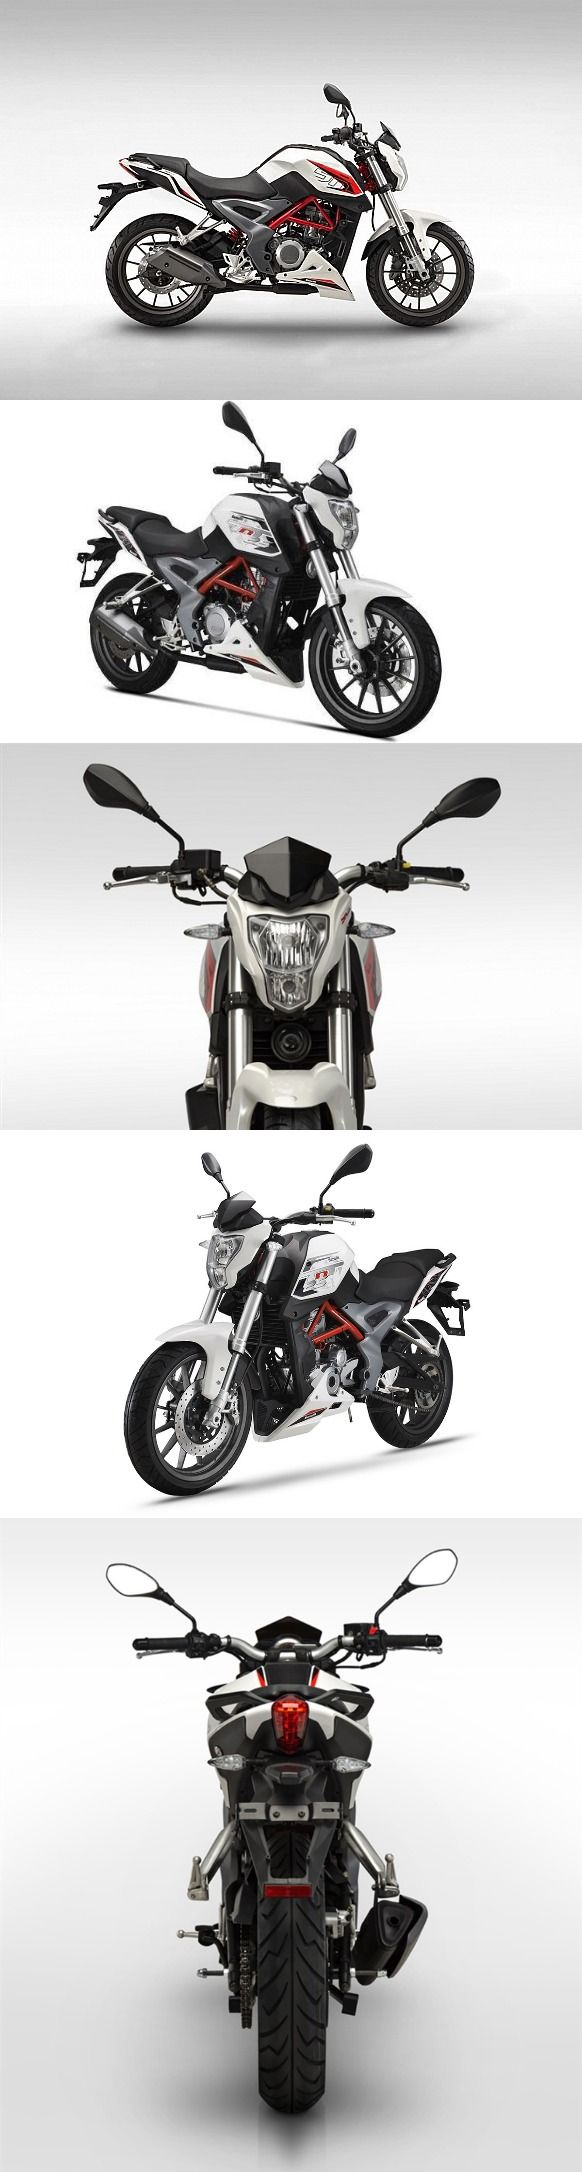 The italian oldest motorcycle manufacturer benelli may launch its benelli tnt 25 in december 2015 under inr 2 lakhs